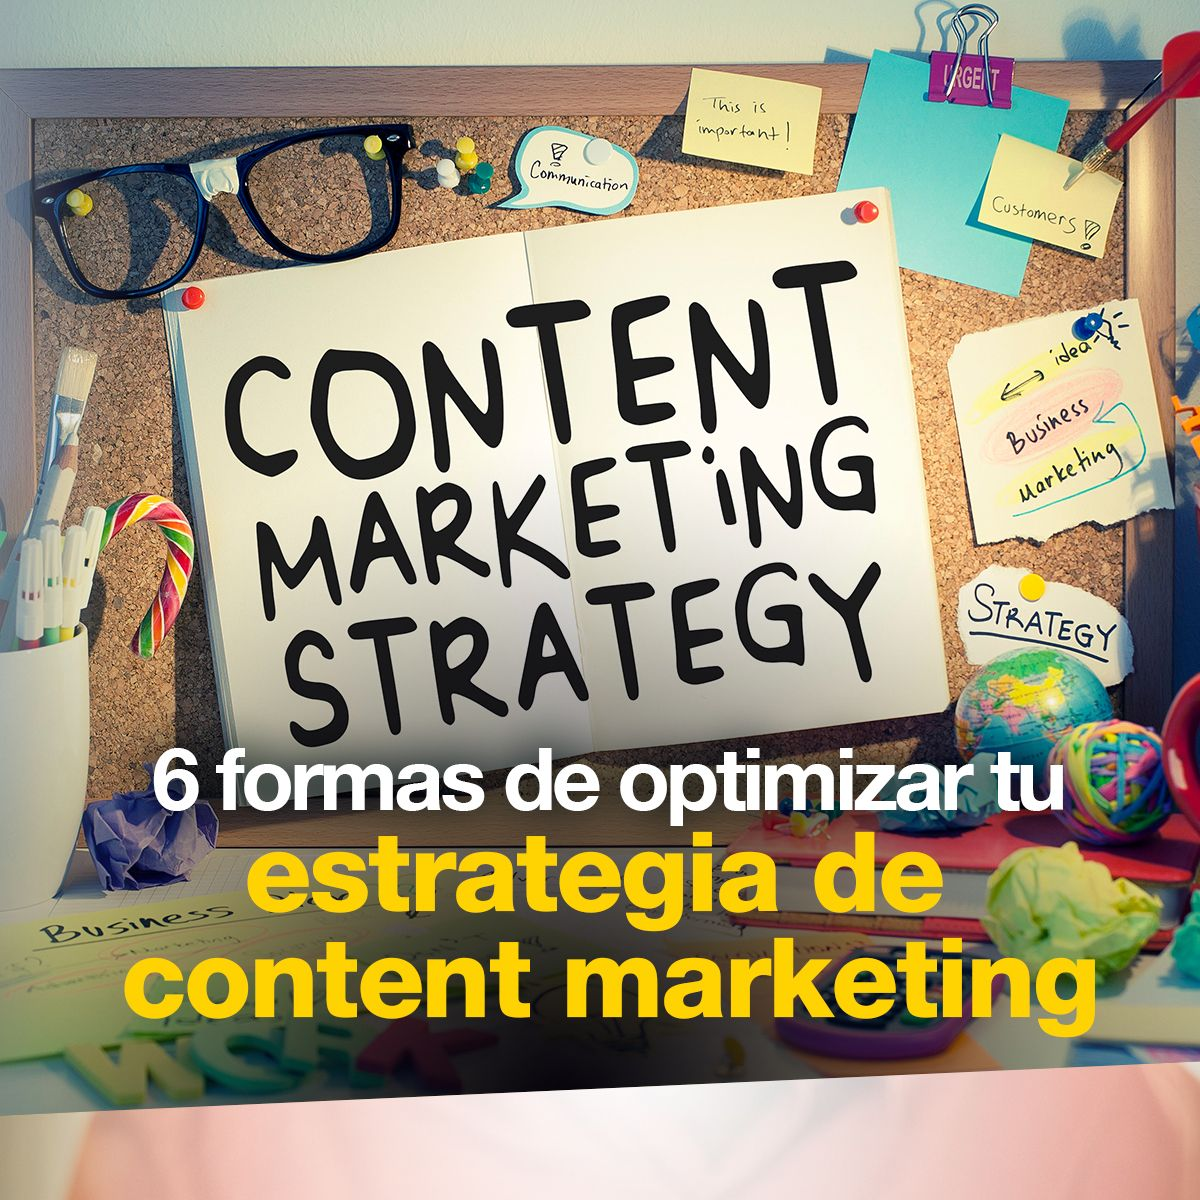 6 formas de optimizar tu estrategia de content marketing